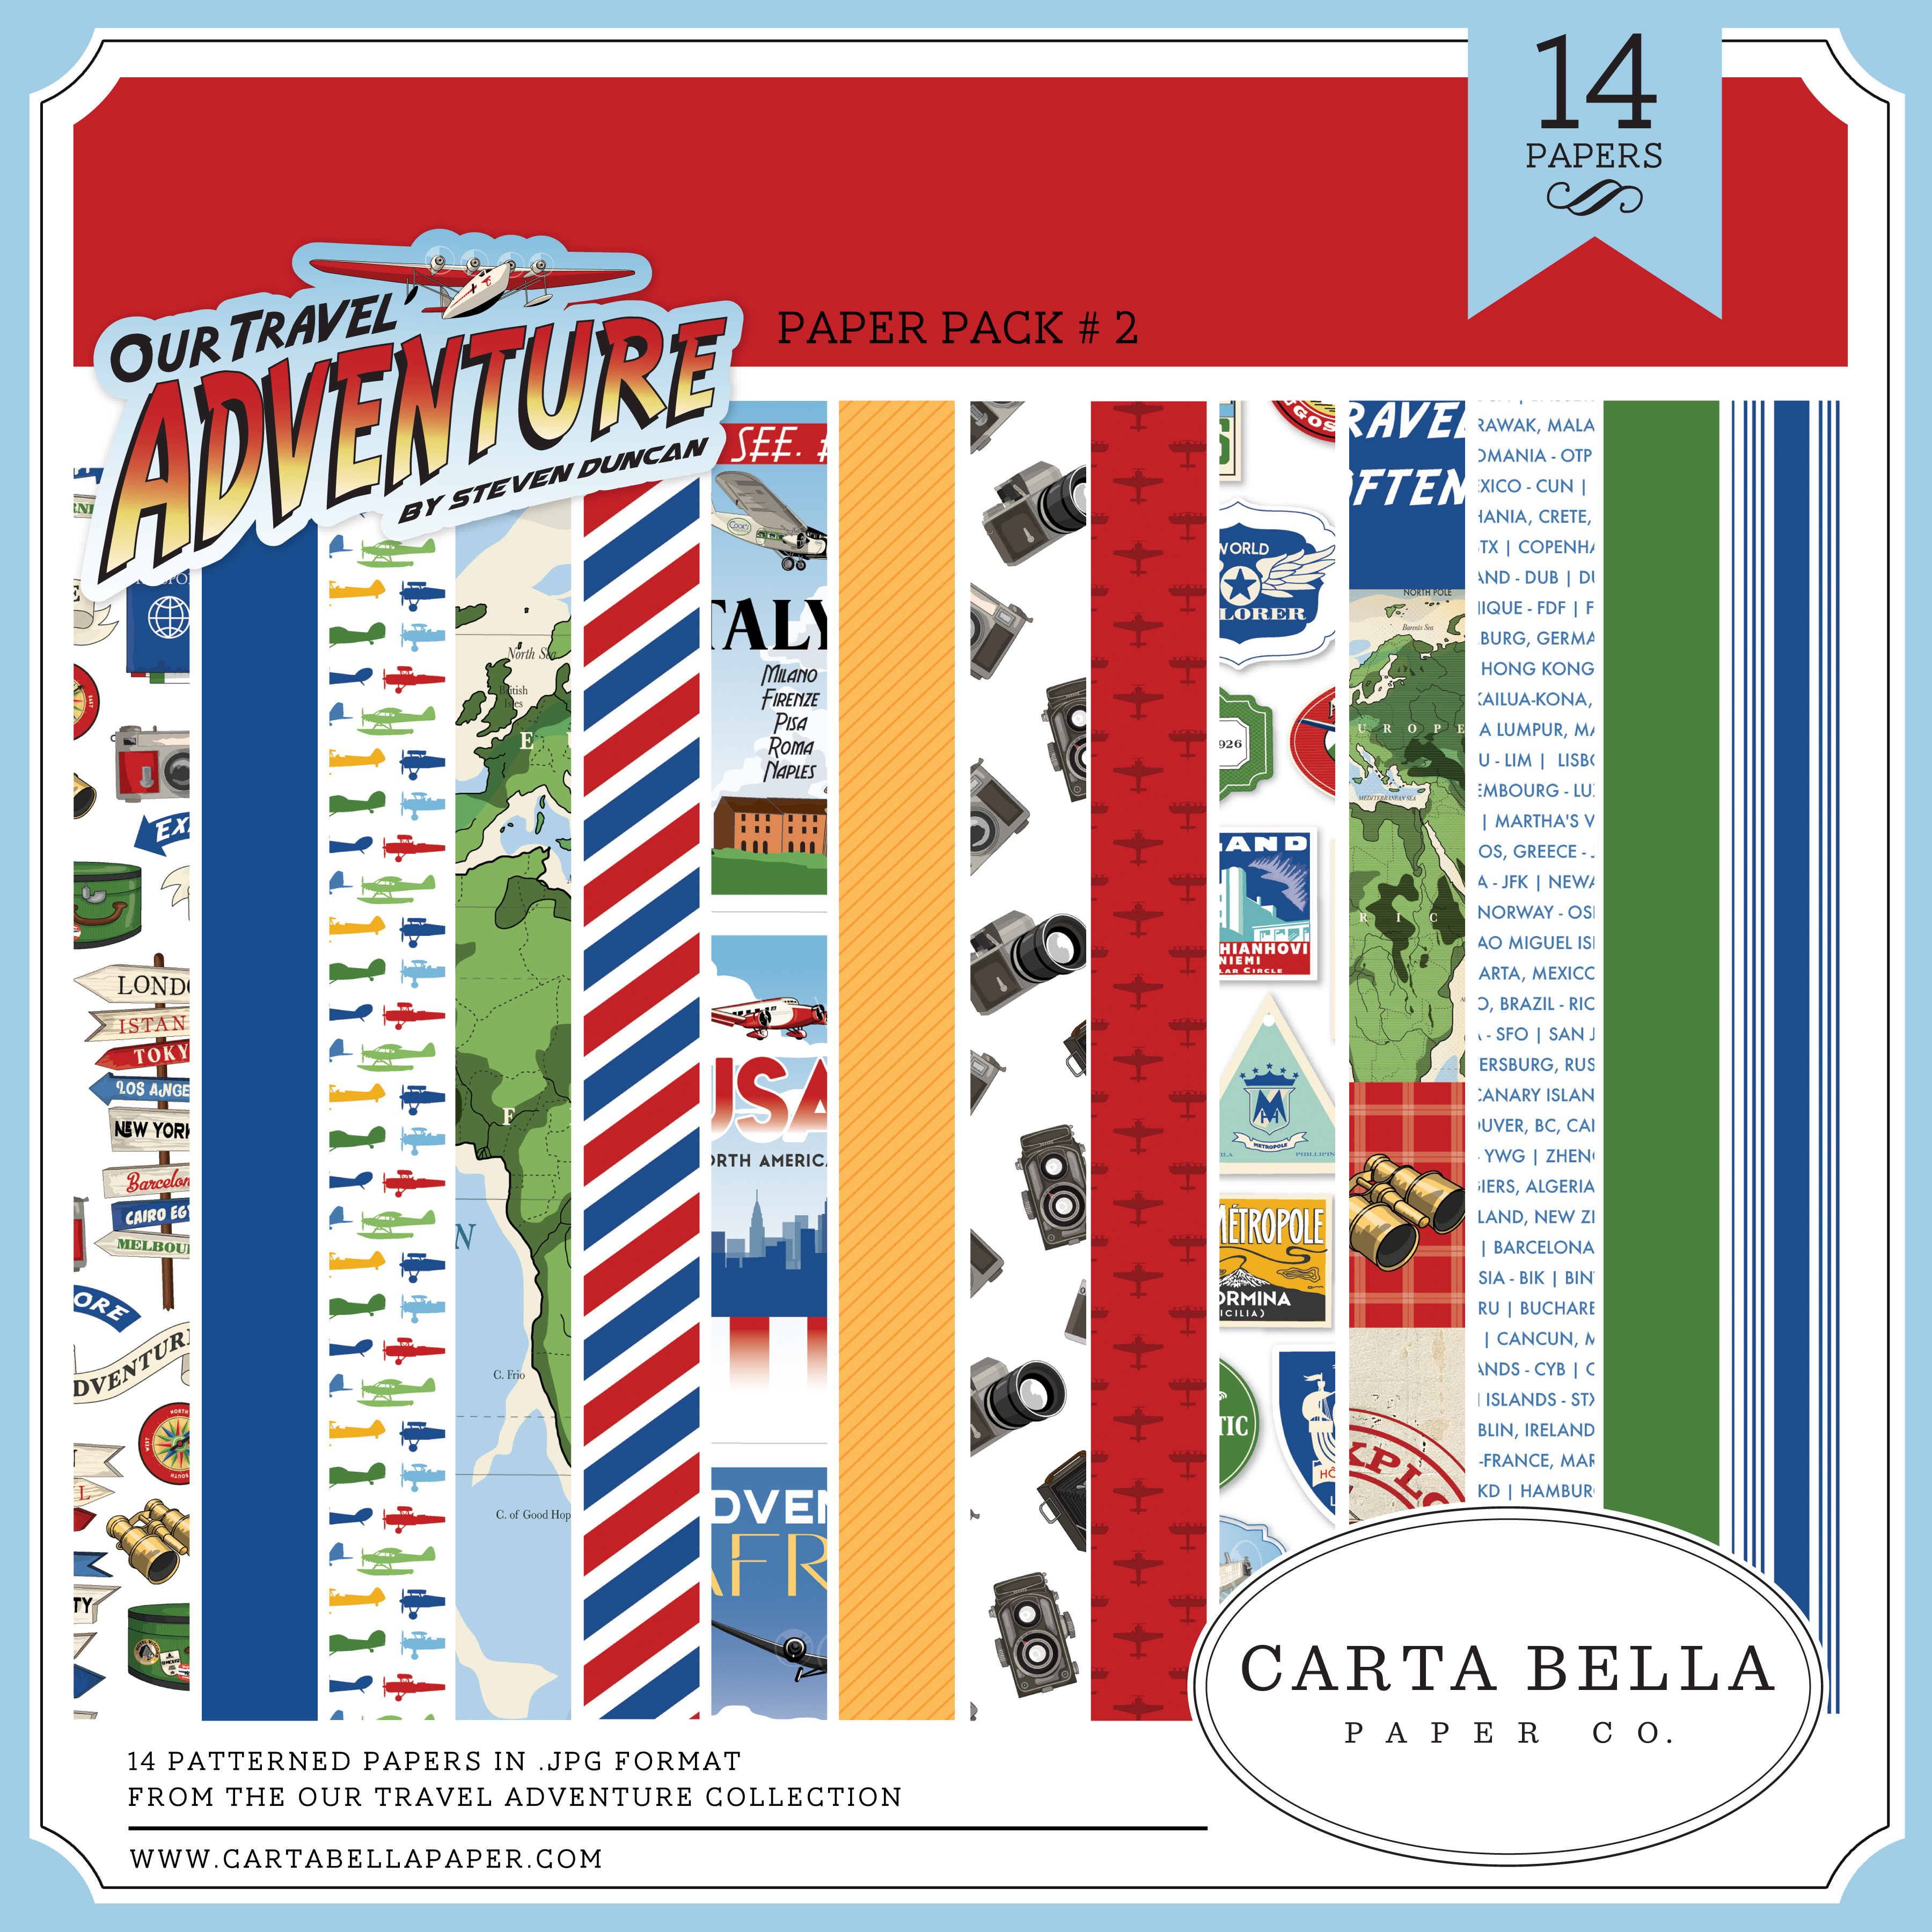 Our Travel Adventure Paper Pack 2